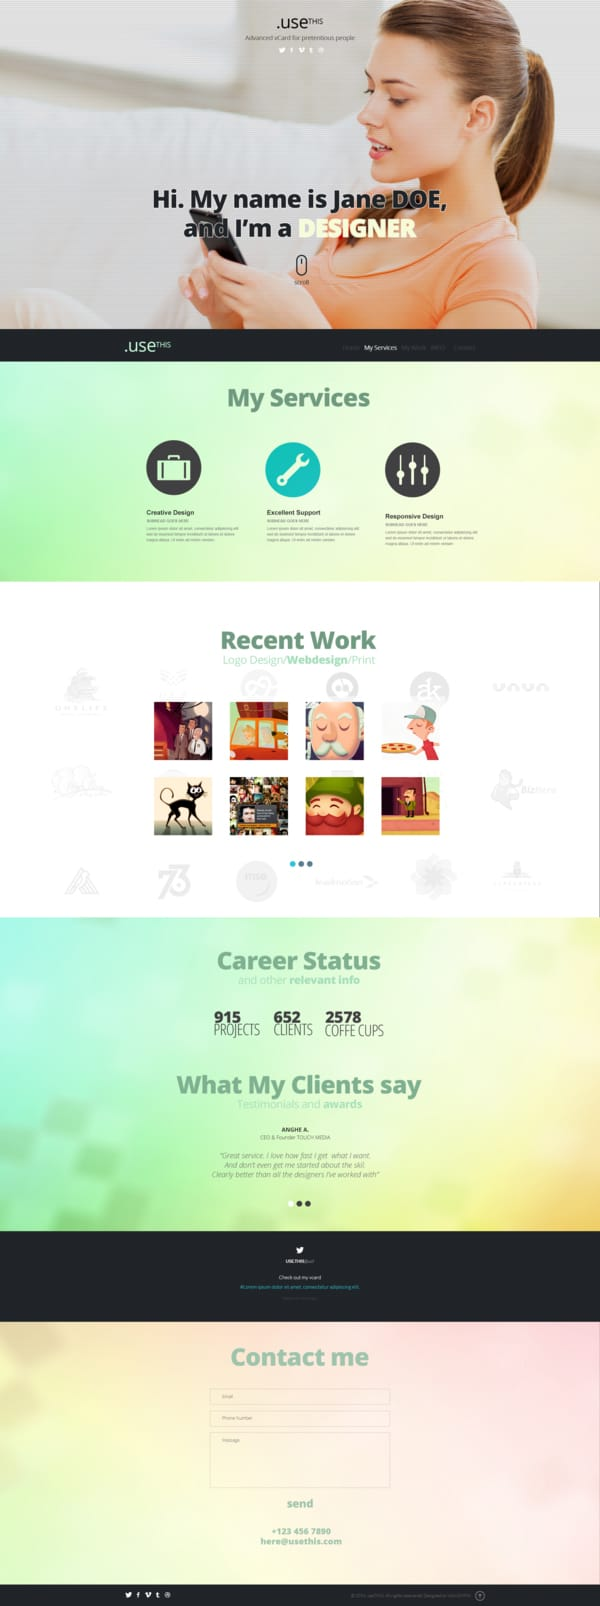 UseThis - A Single Page PSD Template